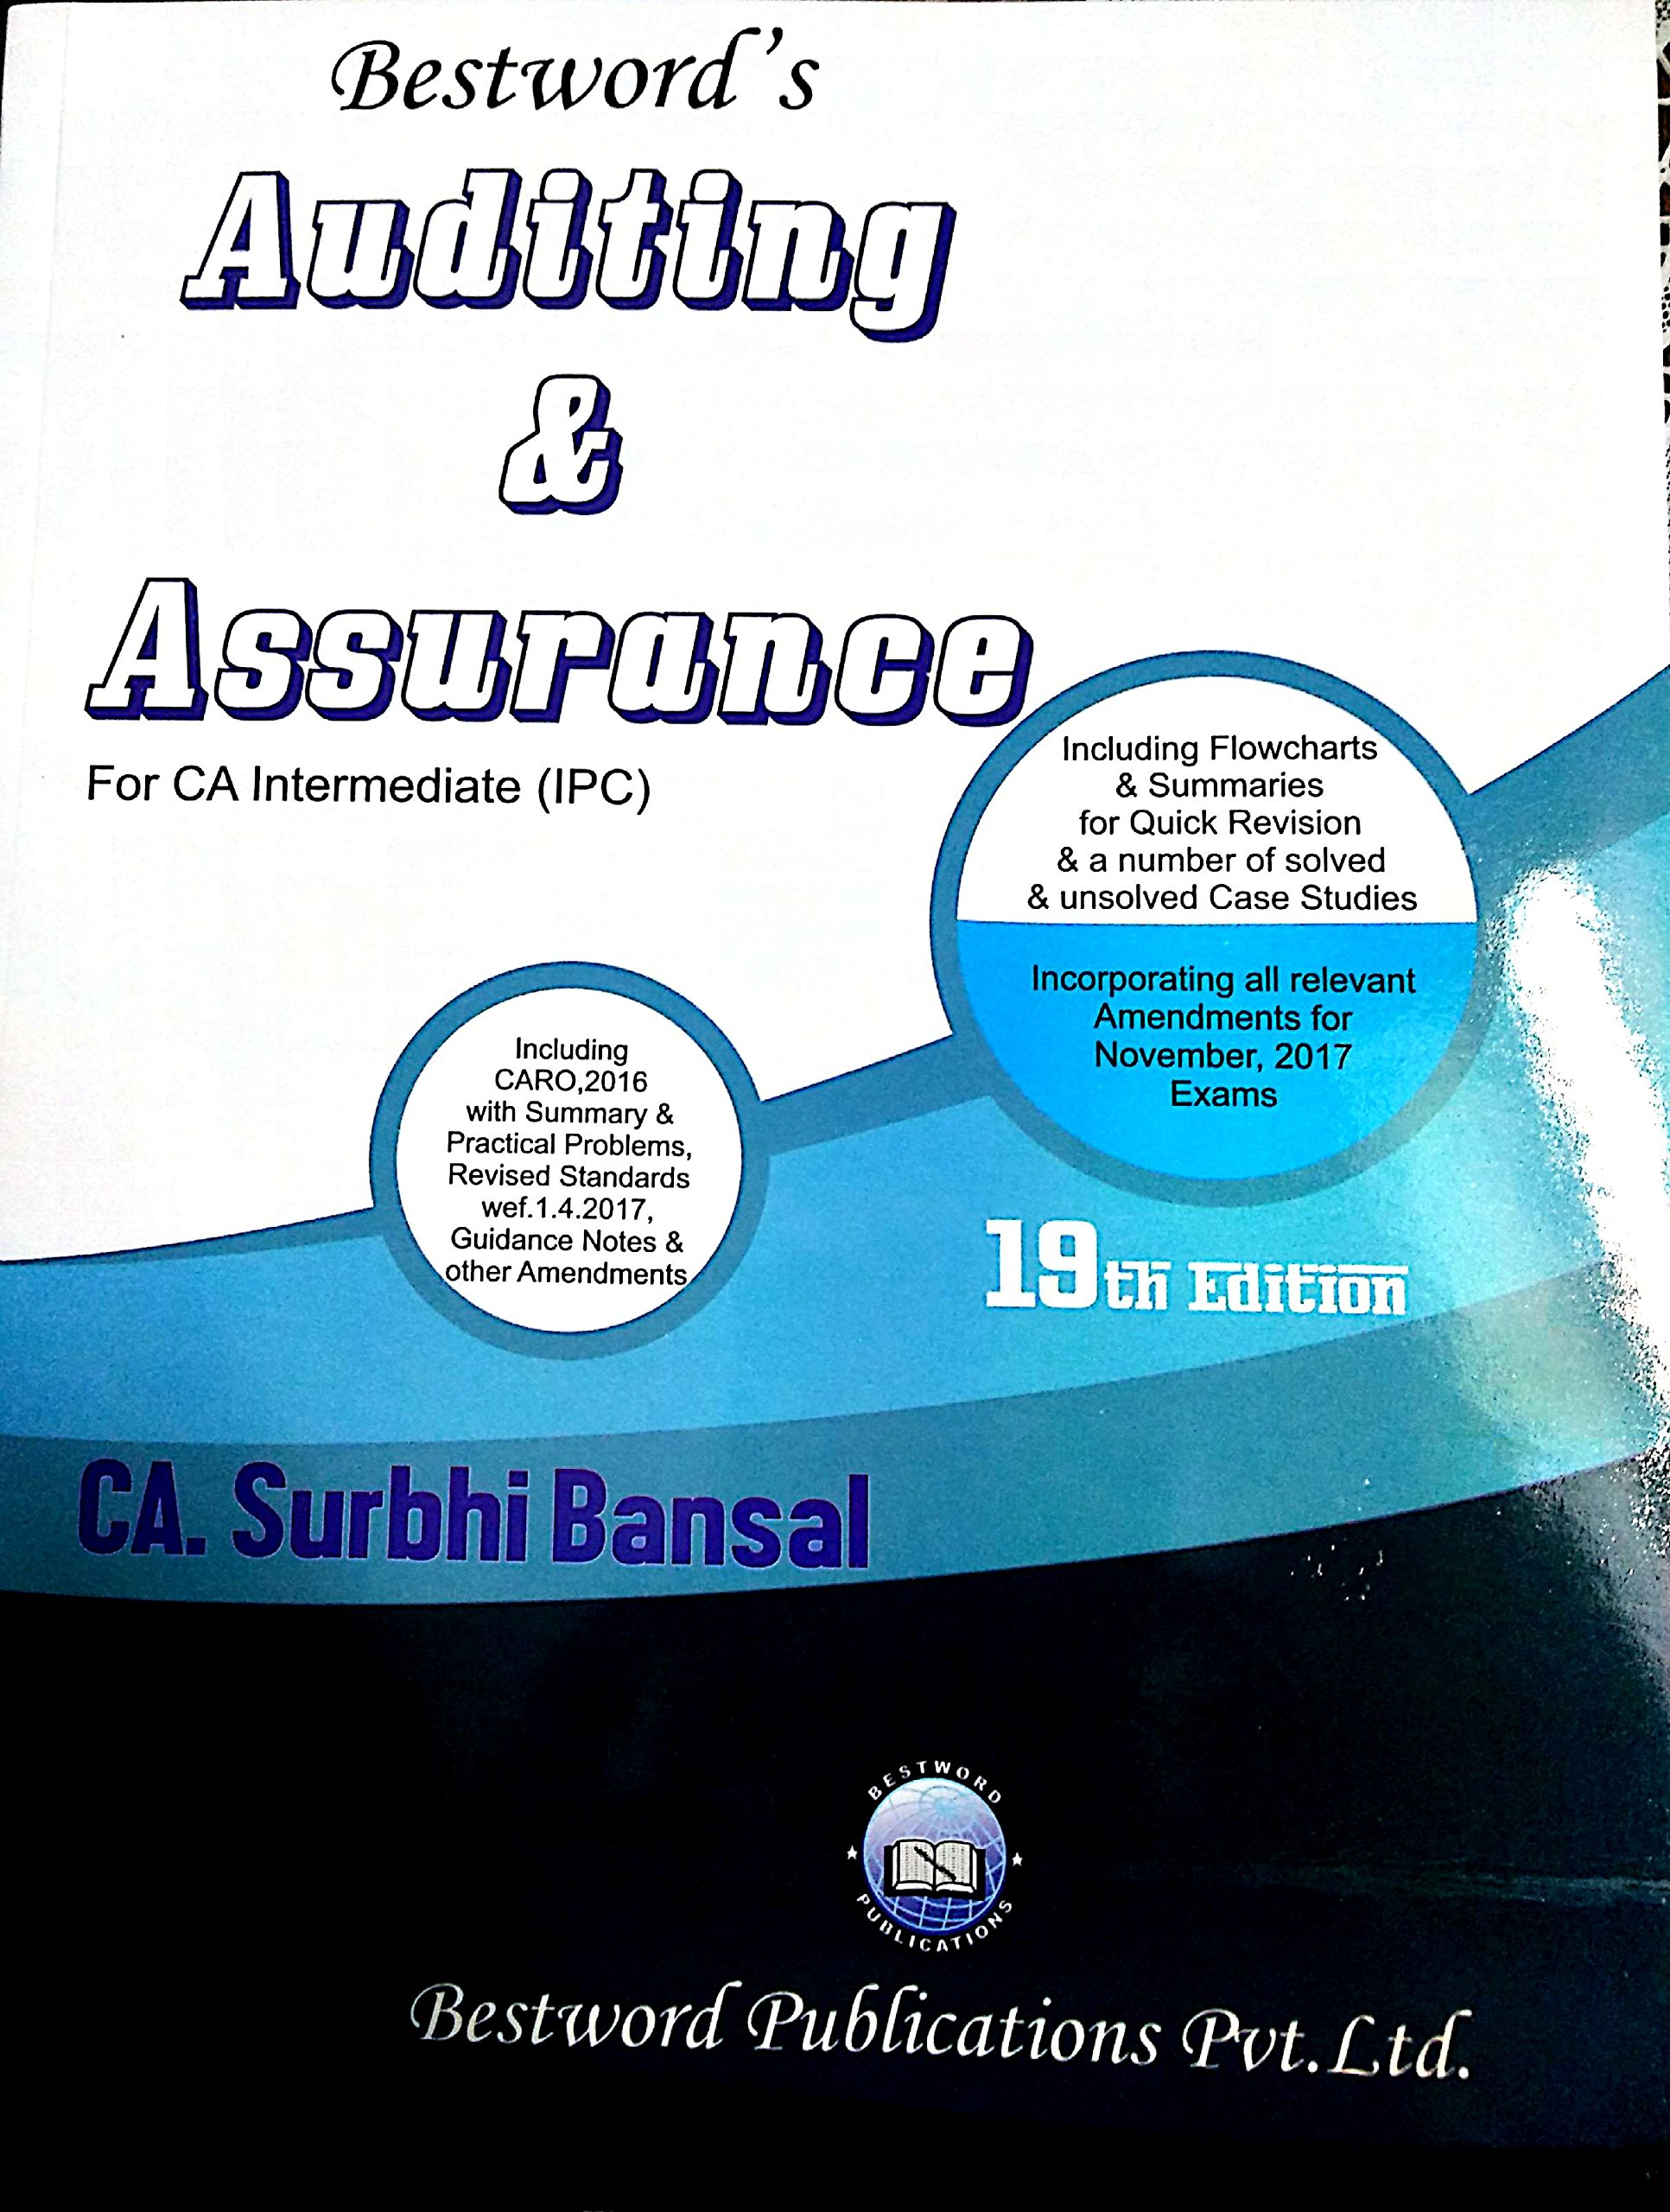 Ca Ipcc Auditing By Surbhi Bansal Wiring Library Bodine Lp600 Emergency Ballast Diagram Buy Assurance For Intermediate Ipc November 2017 Exams Book Online At